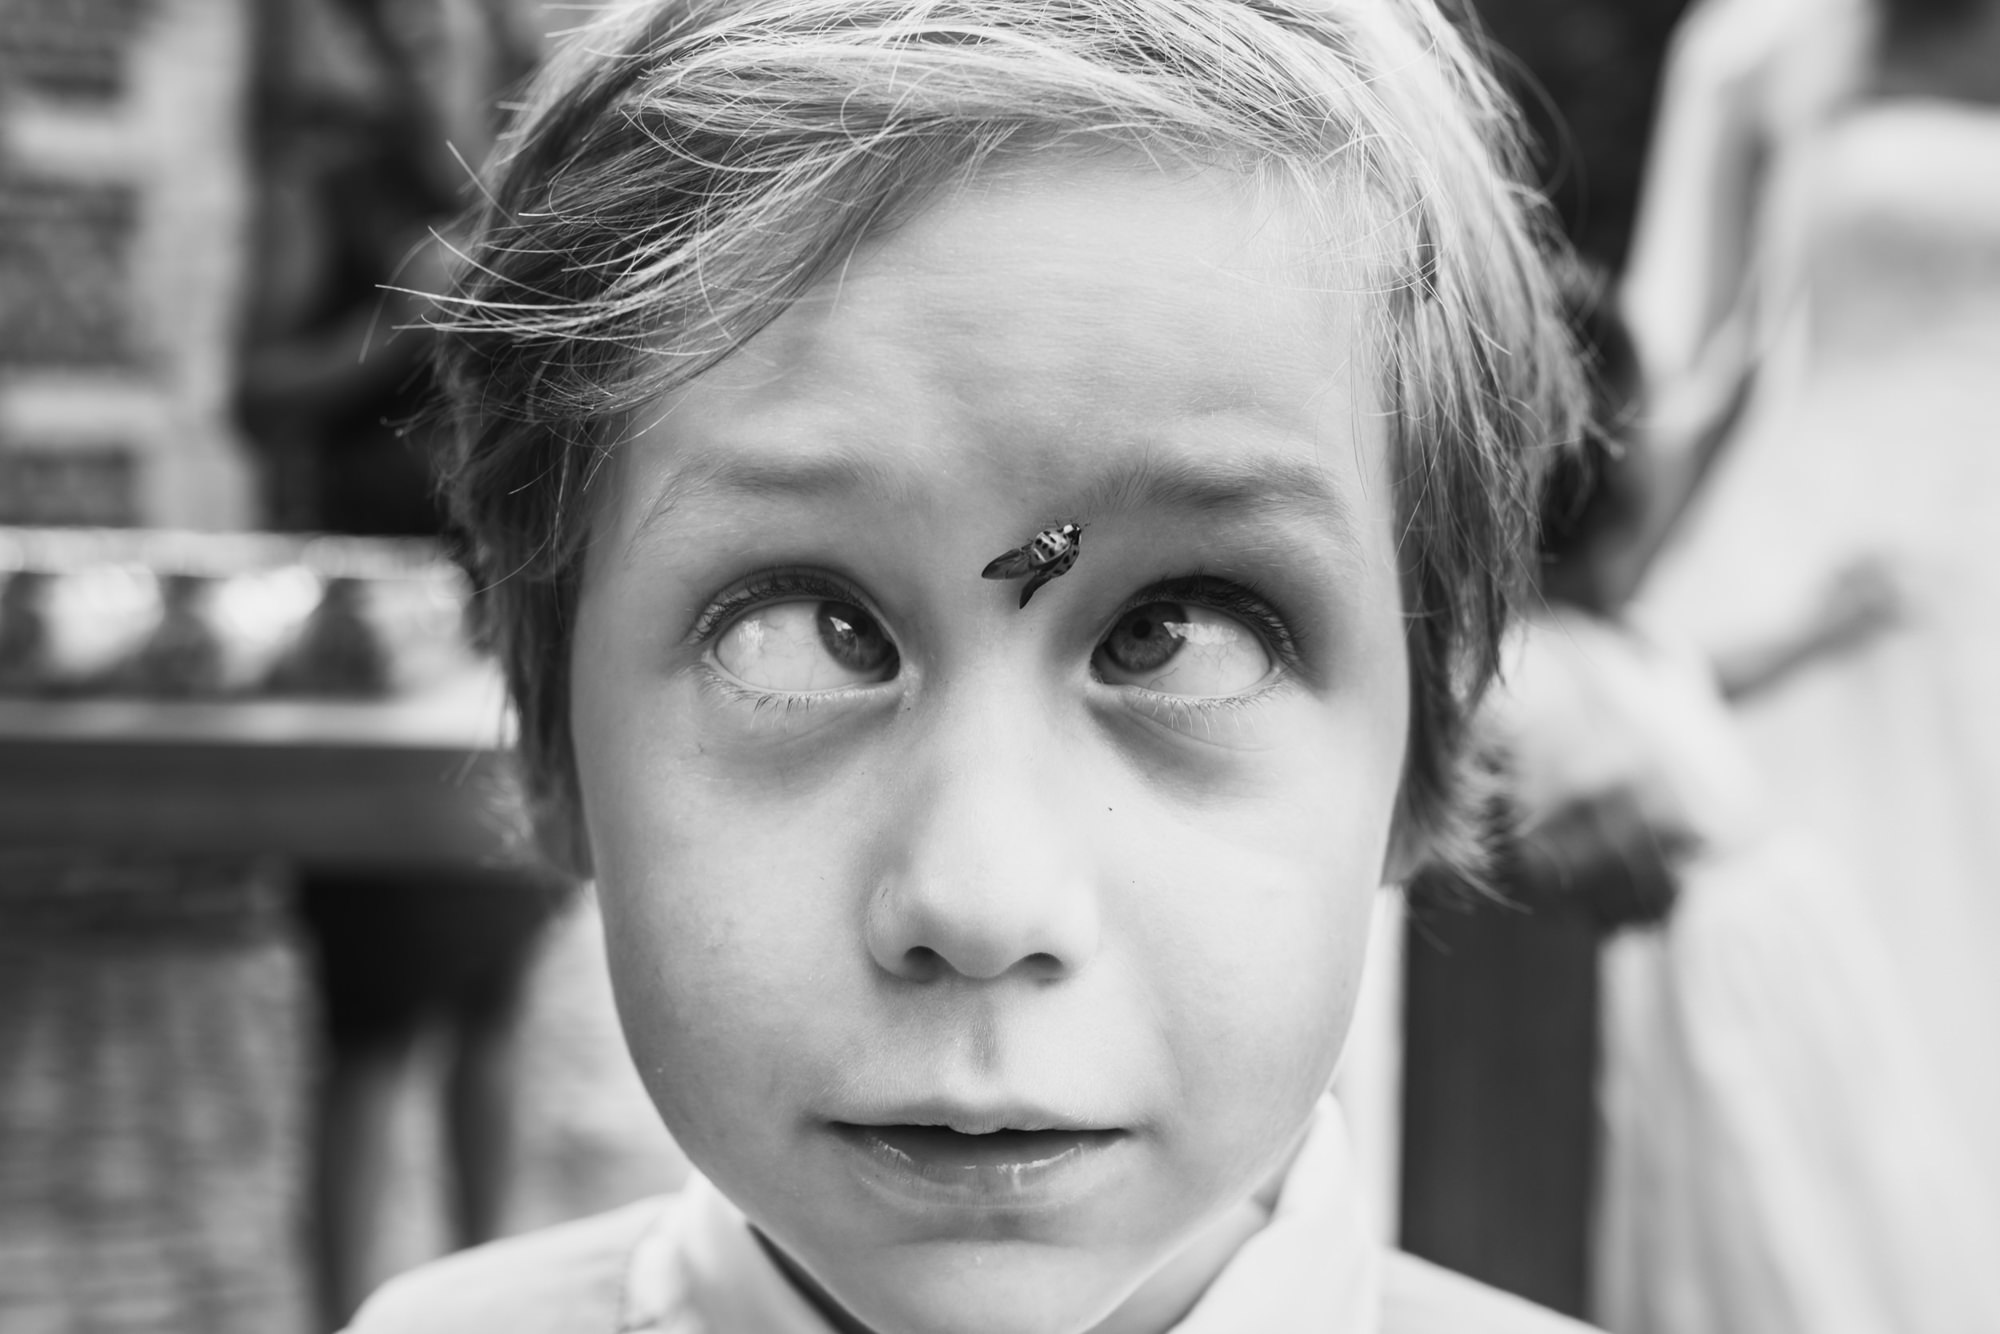 Fun photo of boy with fly between his eyes - photo by Phillipe Swiggers